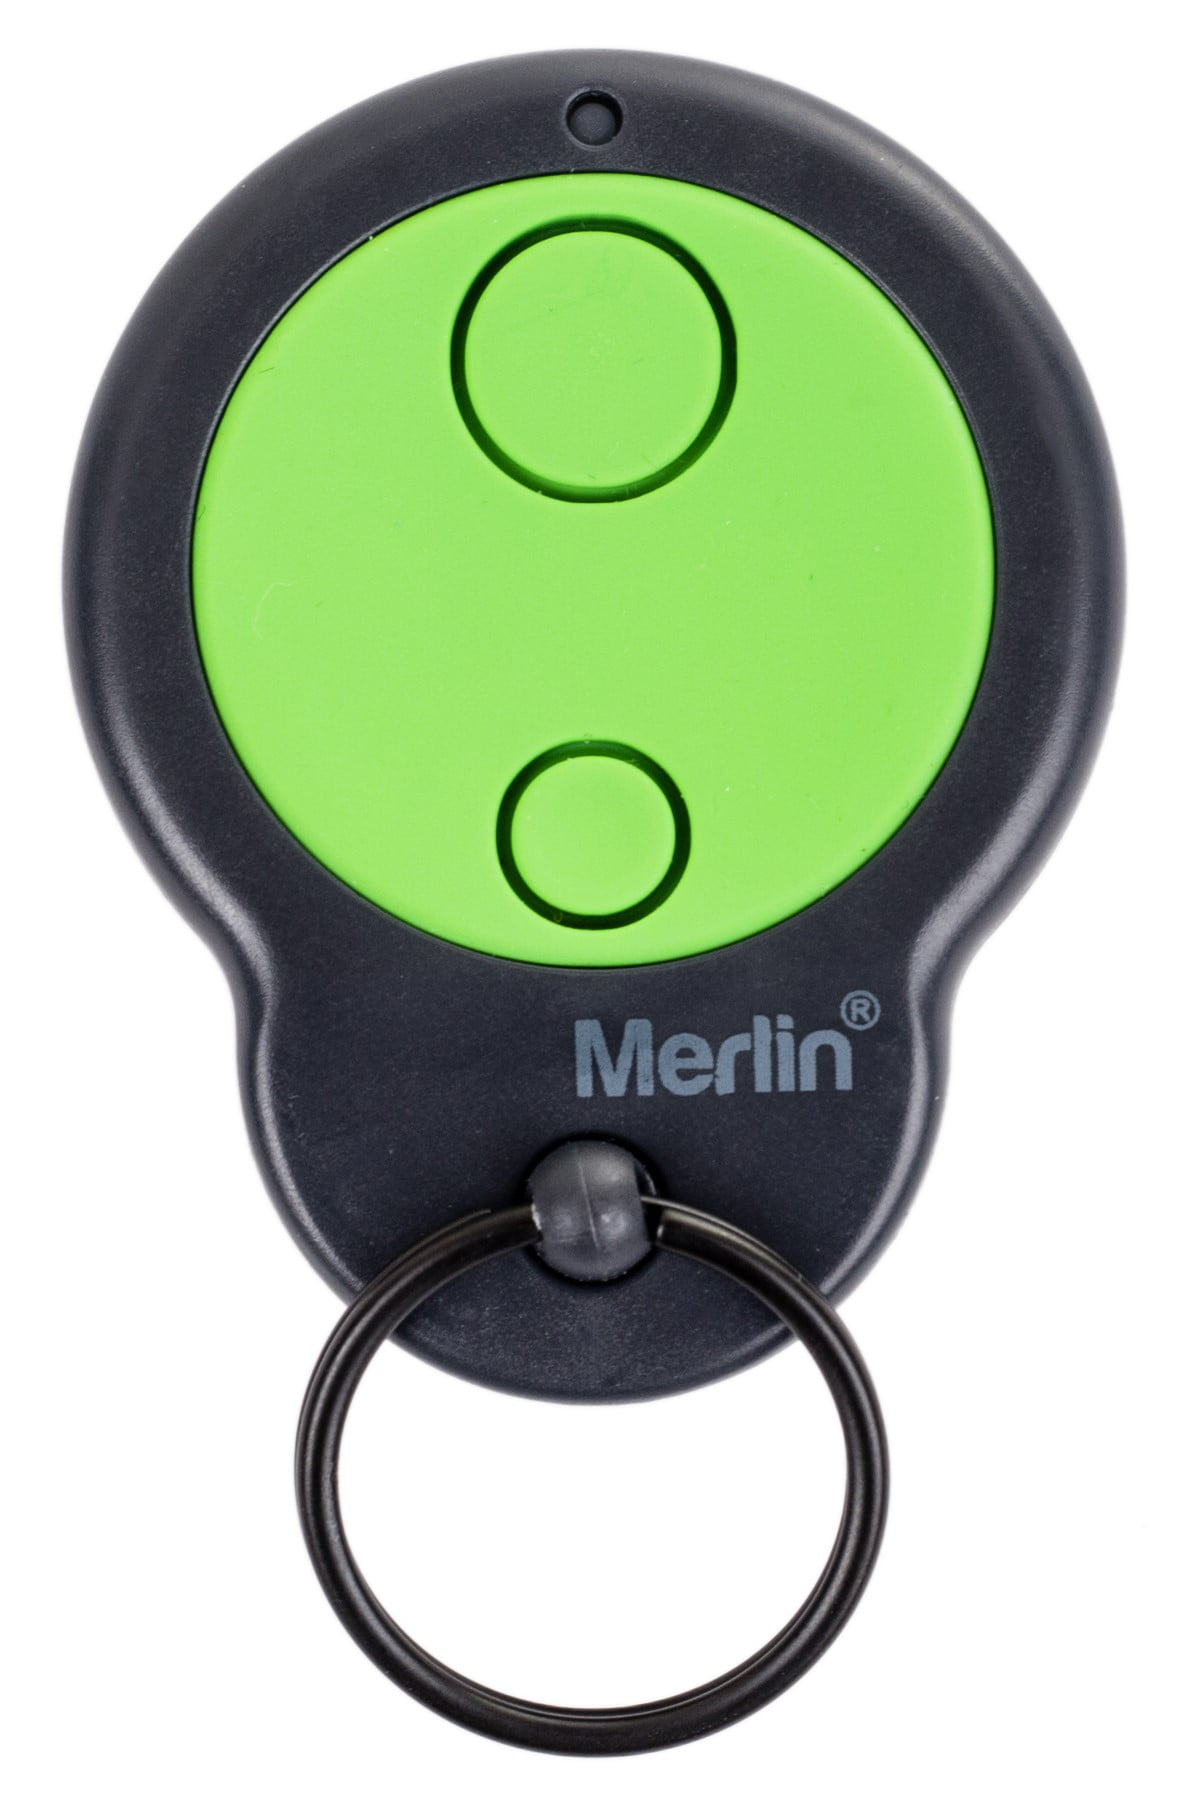 Merlin M842 Keyring 2 Button Garage Door Remote National Garage